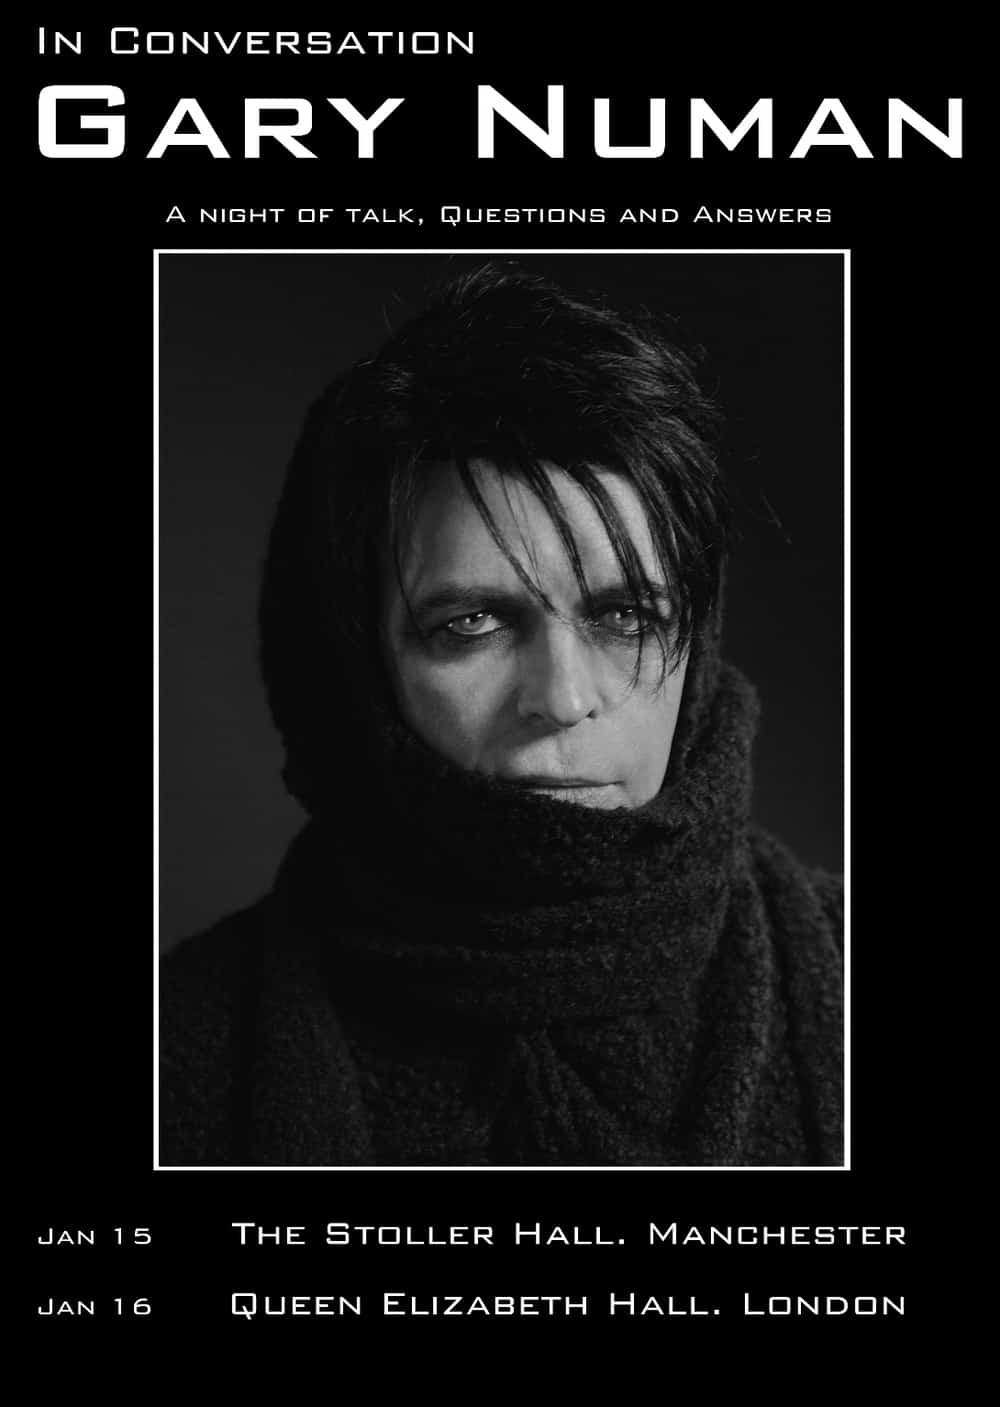 Buy Online Gary Numan - In Conversation Meet and Greet Ticket